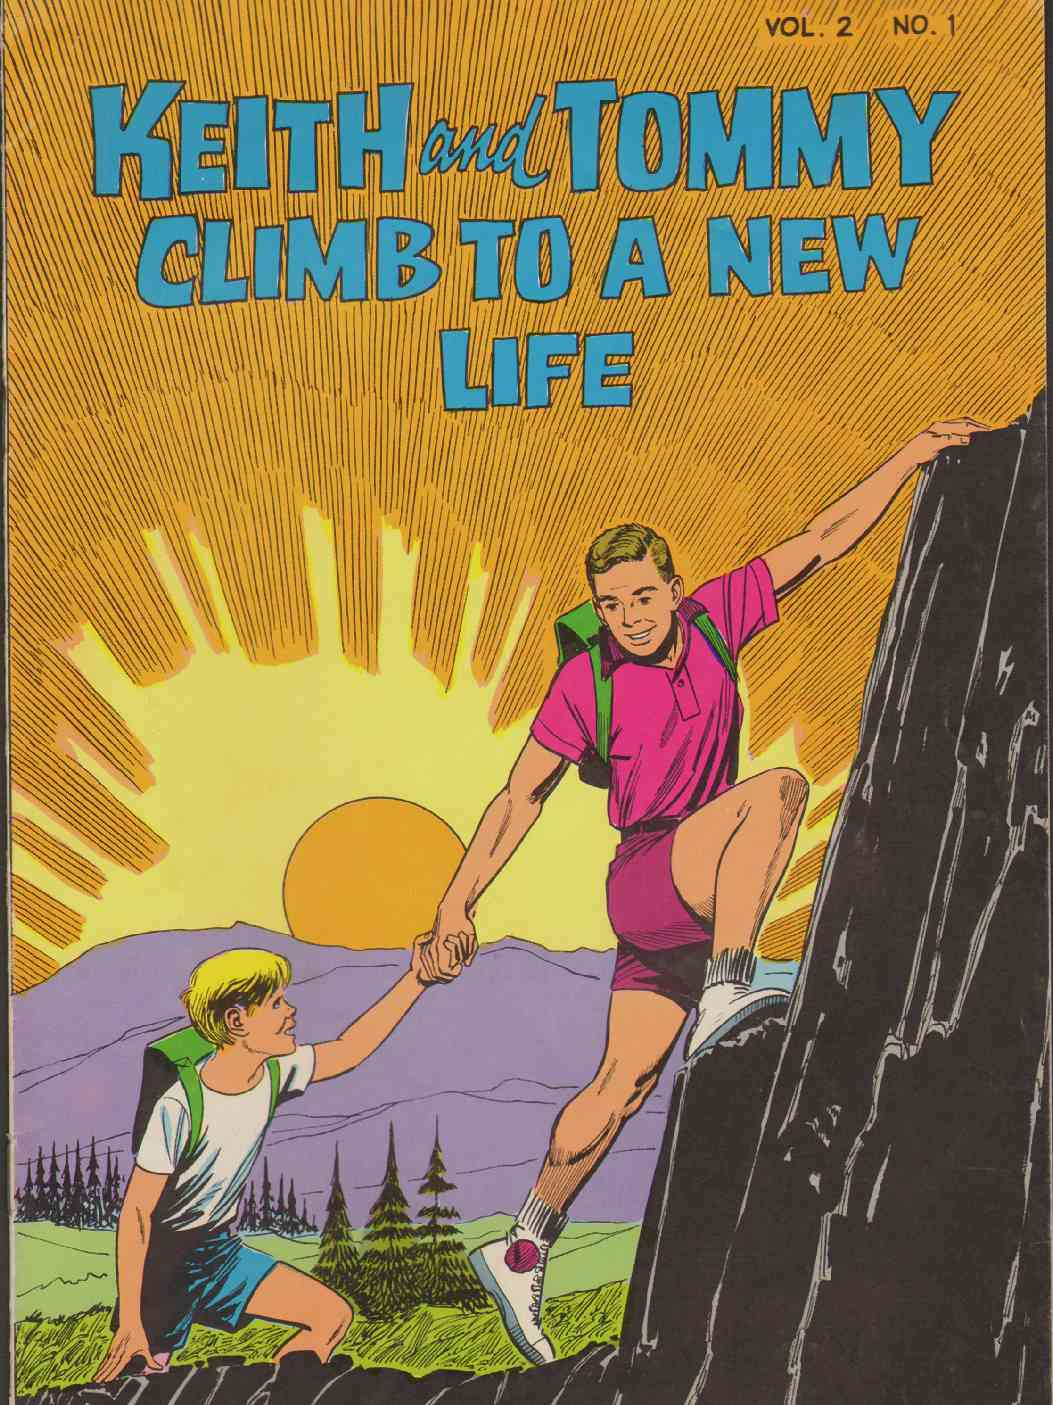 Image for KEITH AND TOMMY CLIMB TO A NEW LIFE Vol. 2 No. 1